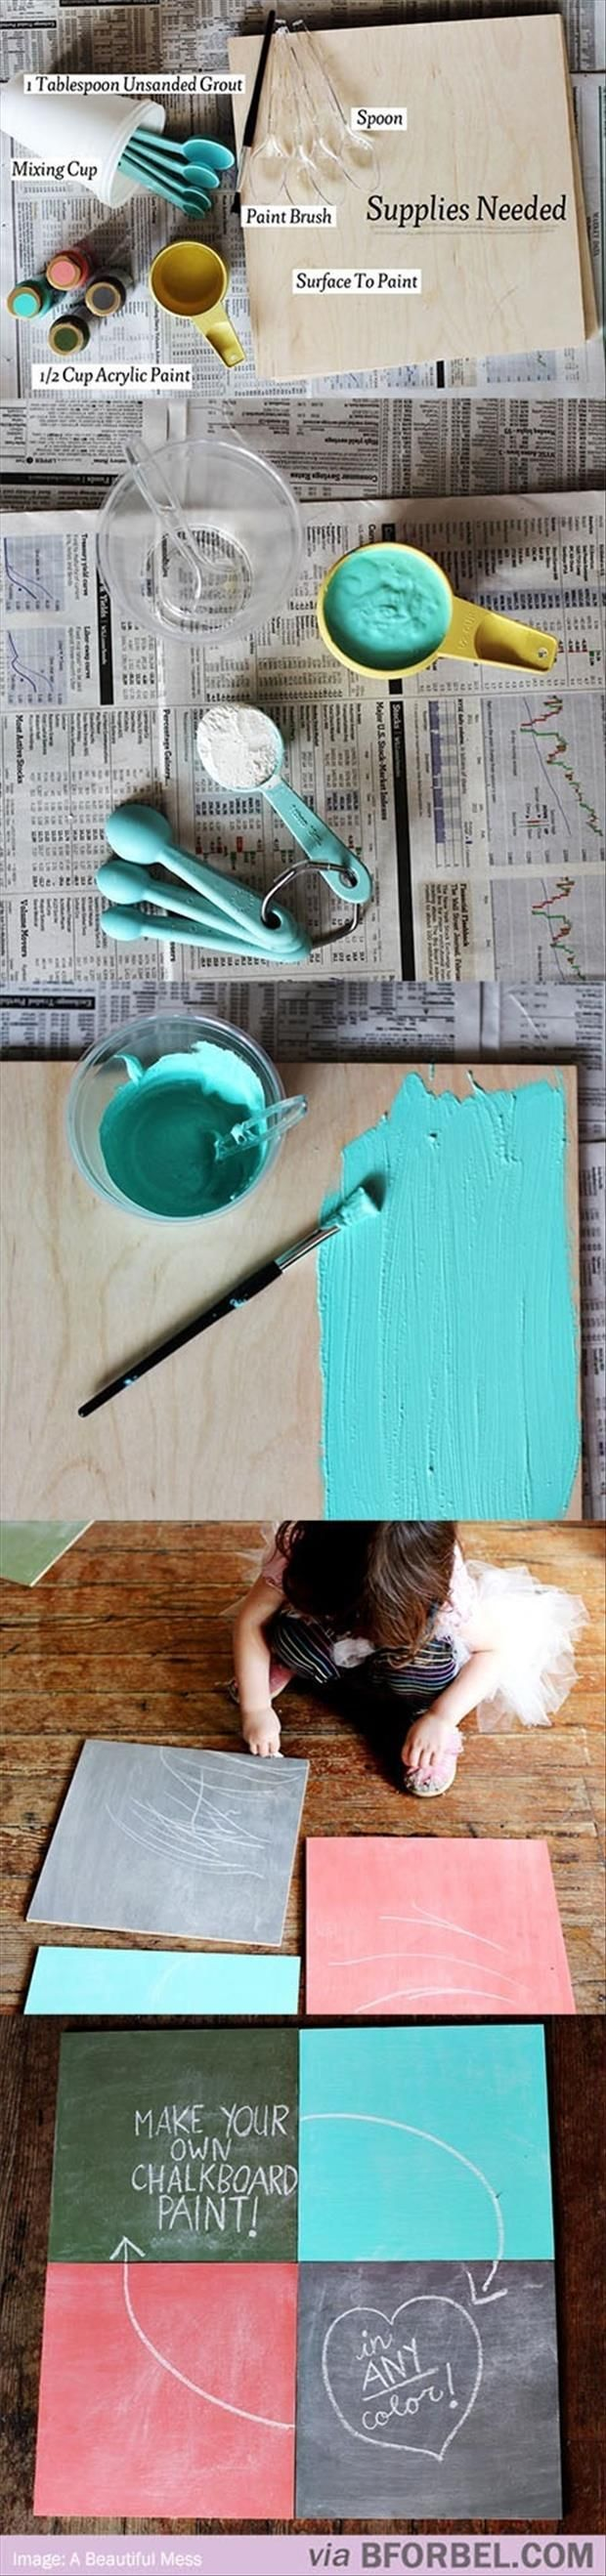 Hello, DIY lovers! Today's post is called 10 DIY Ideas for Your Home. Yes. We are going to show you 10 DIY ideas to decorate your home. Stay with us and get inspired from the post. In the post, you can find many ways to decorate your home. You can make pretty table decorations, amazing …